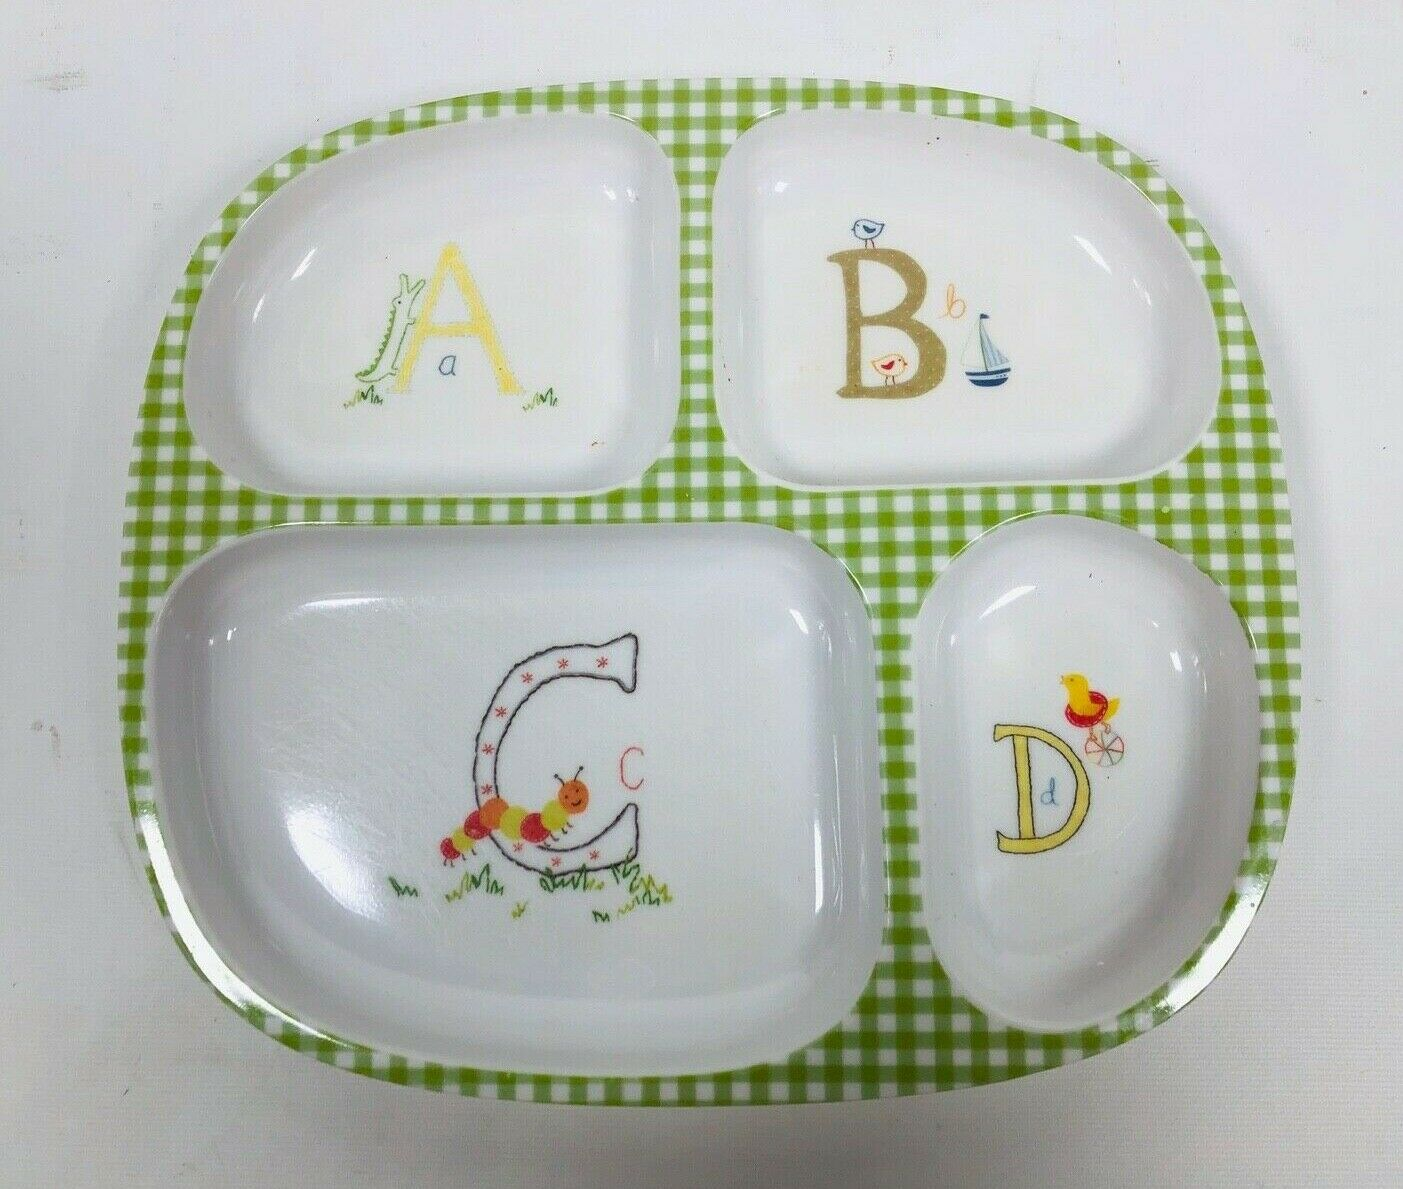 POTTERY BARN KIDS PLATES Set of 3 Divided Melamine Food Trays Animal Print BABY Без бренда - фотография #3